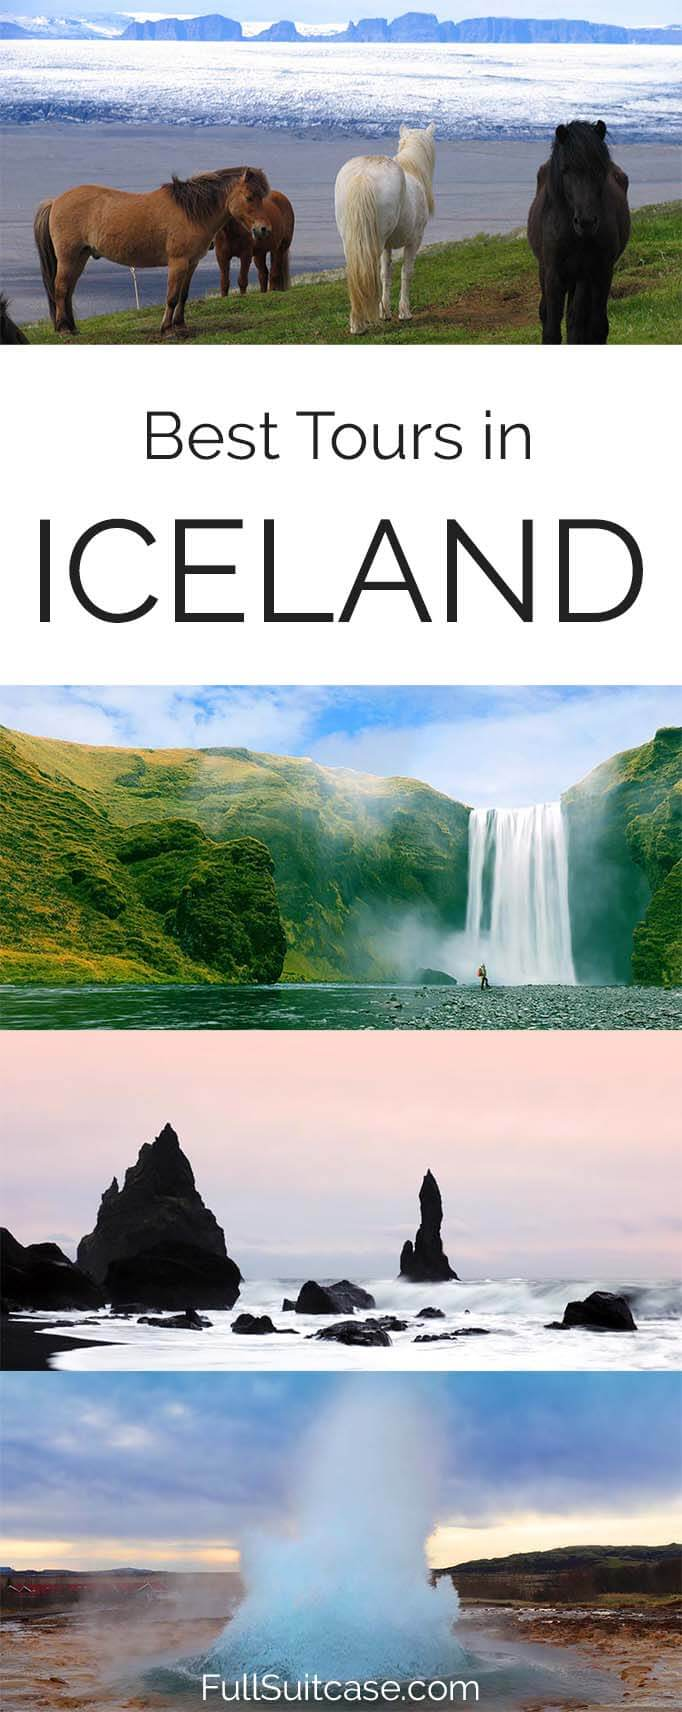 Best guided tours and day trips in Iceland